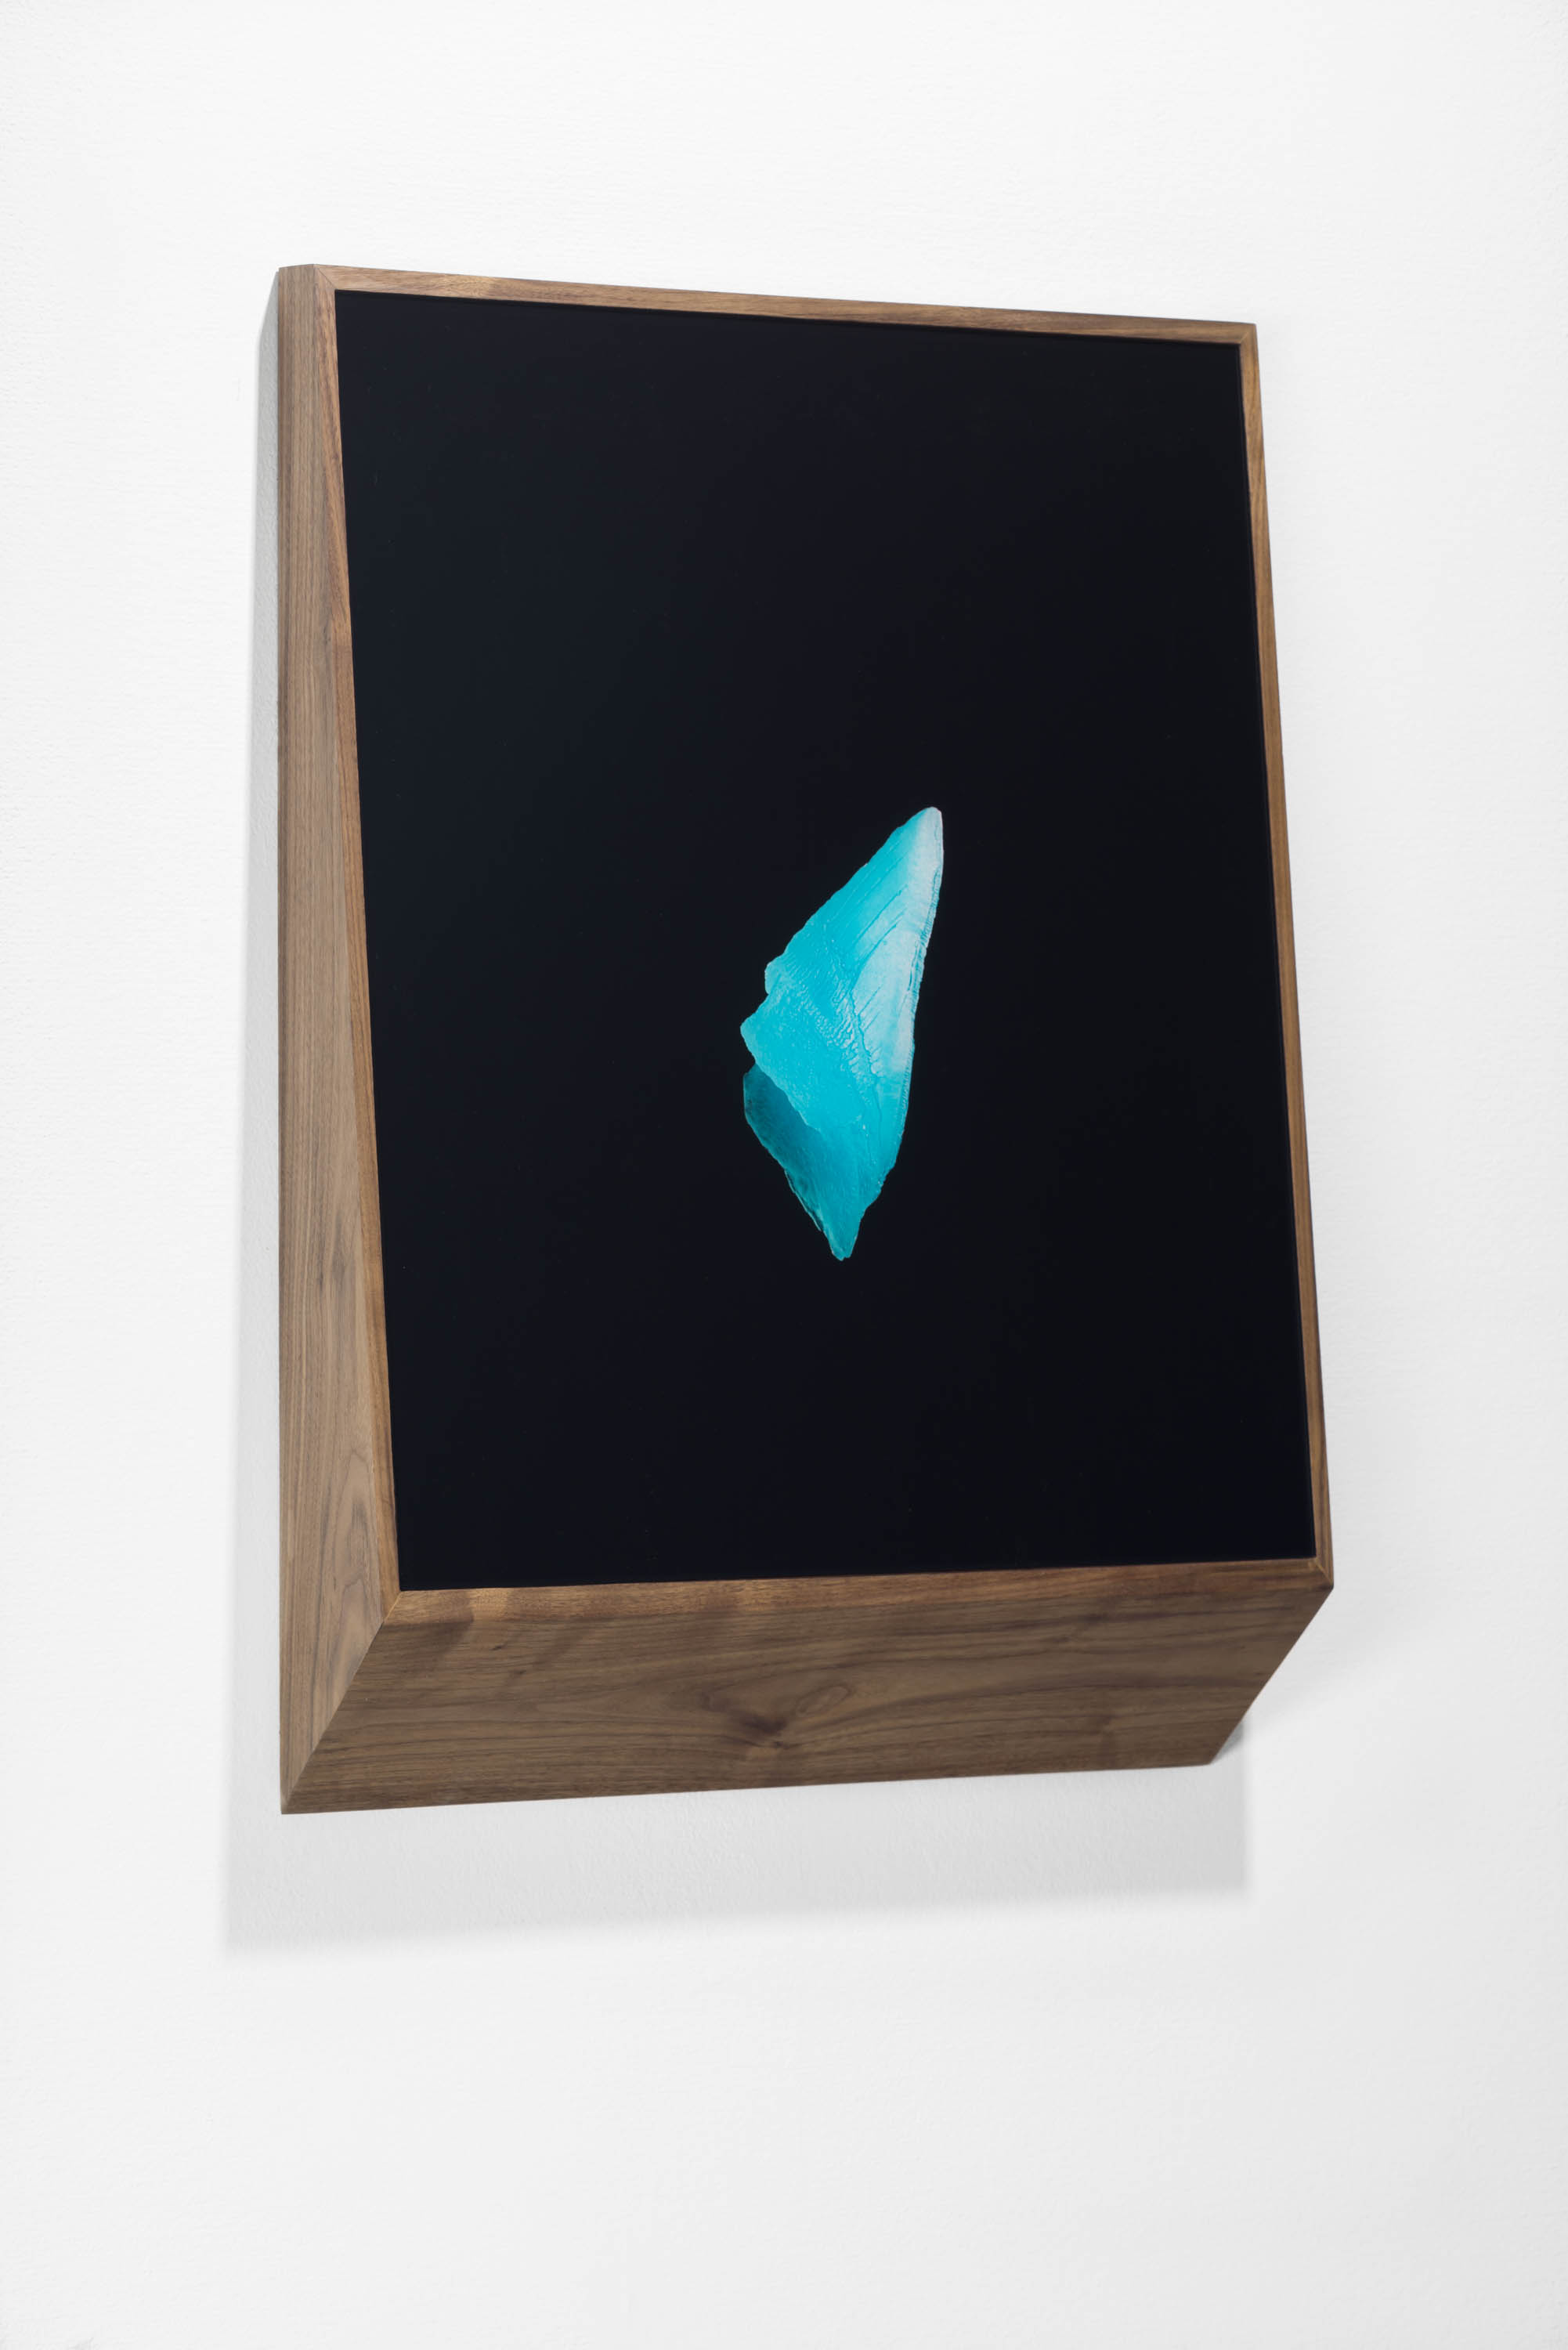 Between Pearl and Petroleum (II), 2016, C-print on plexi, walnut frame, 73 cm x 52 cm x 11 cm, edition of 3